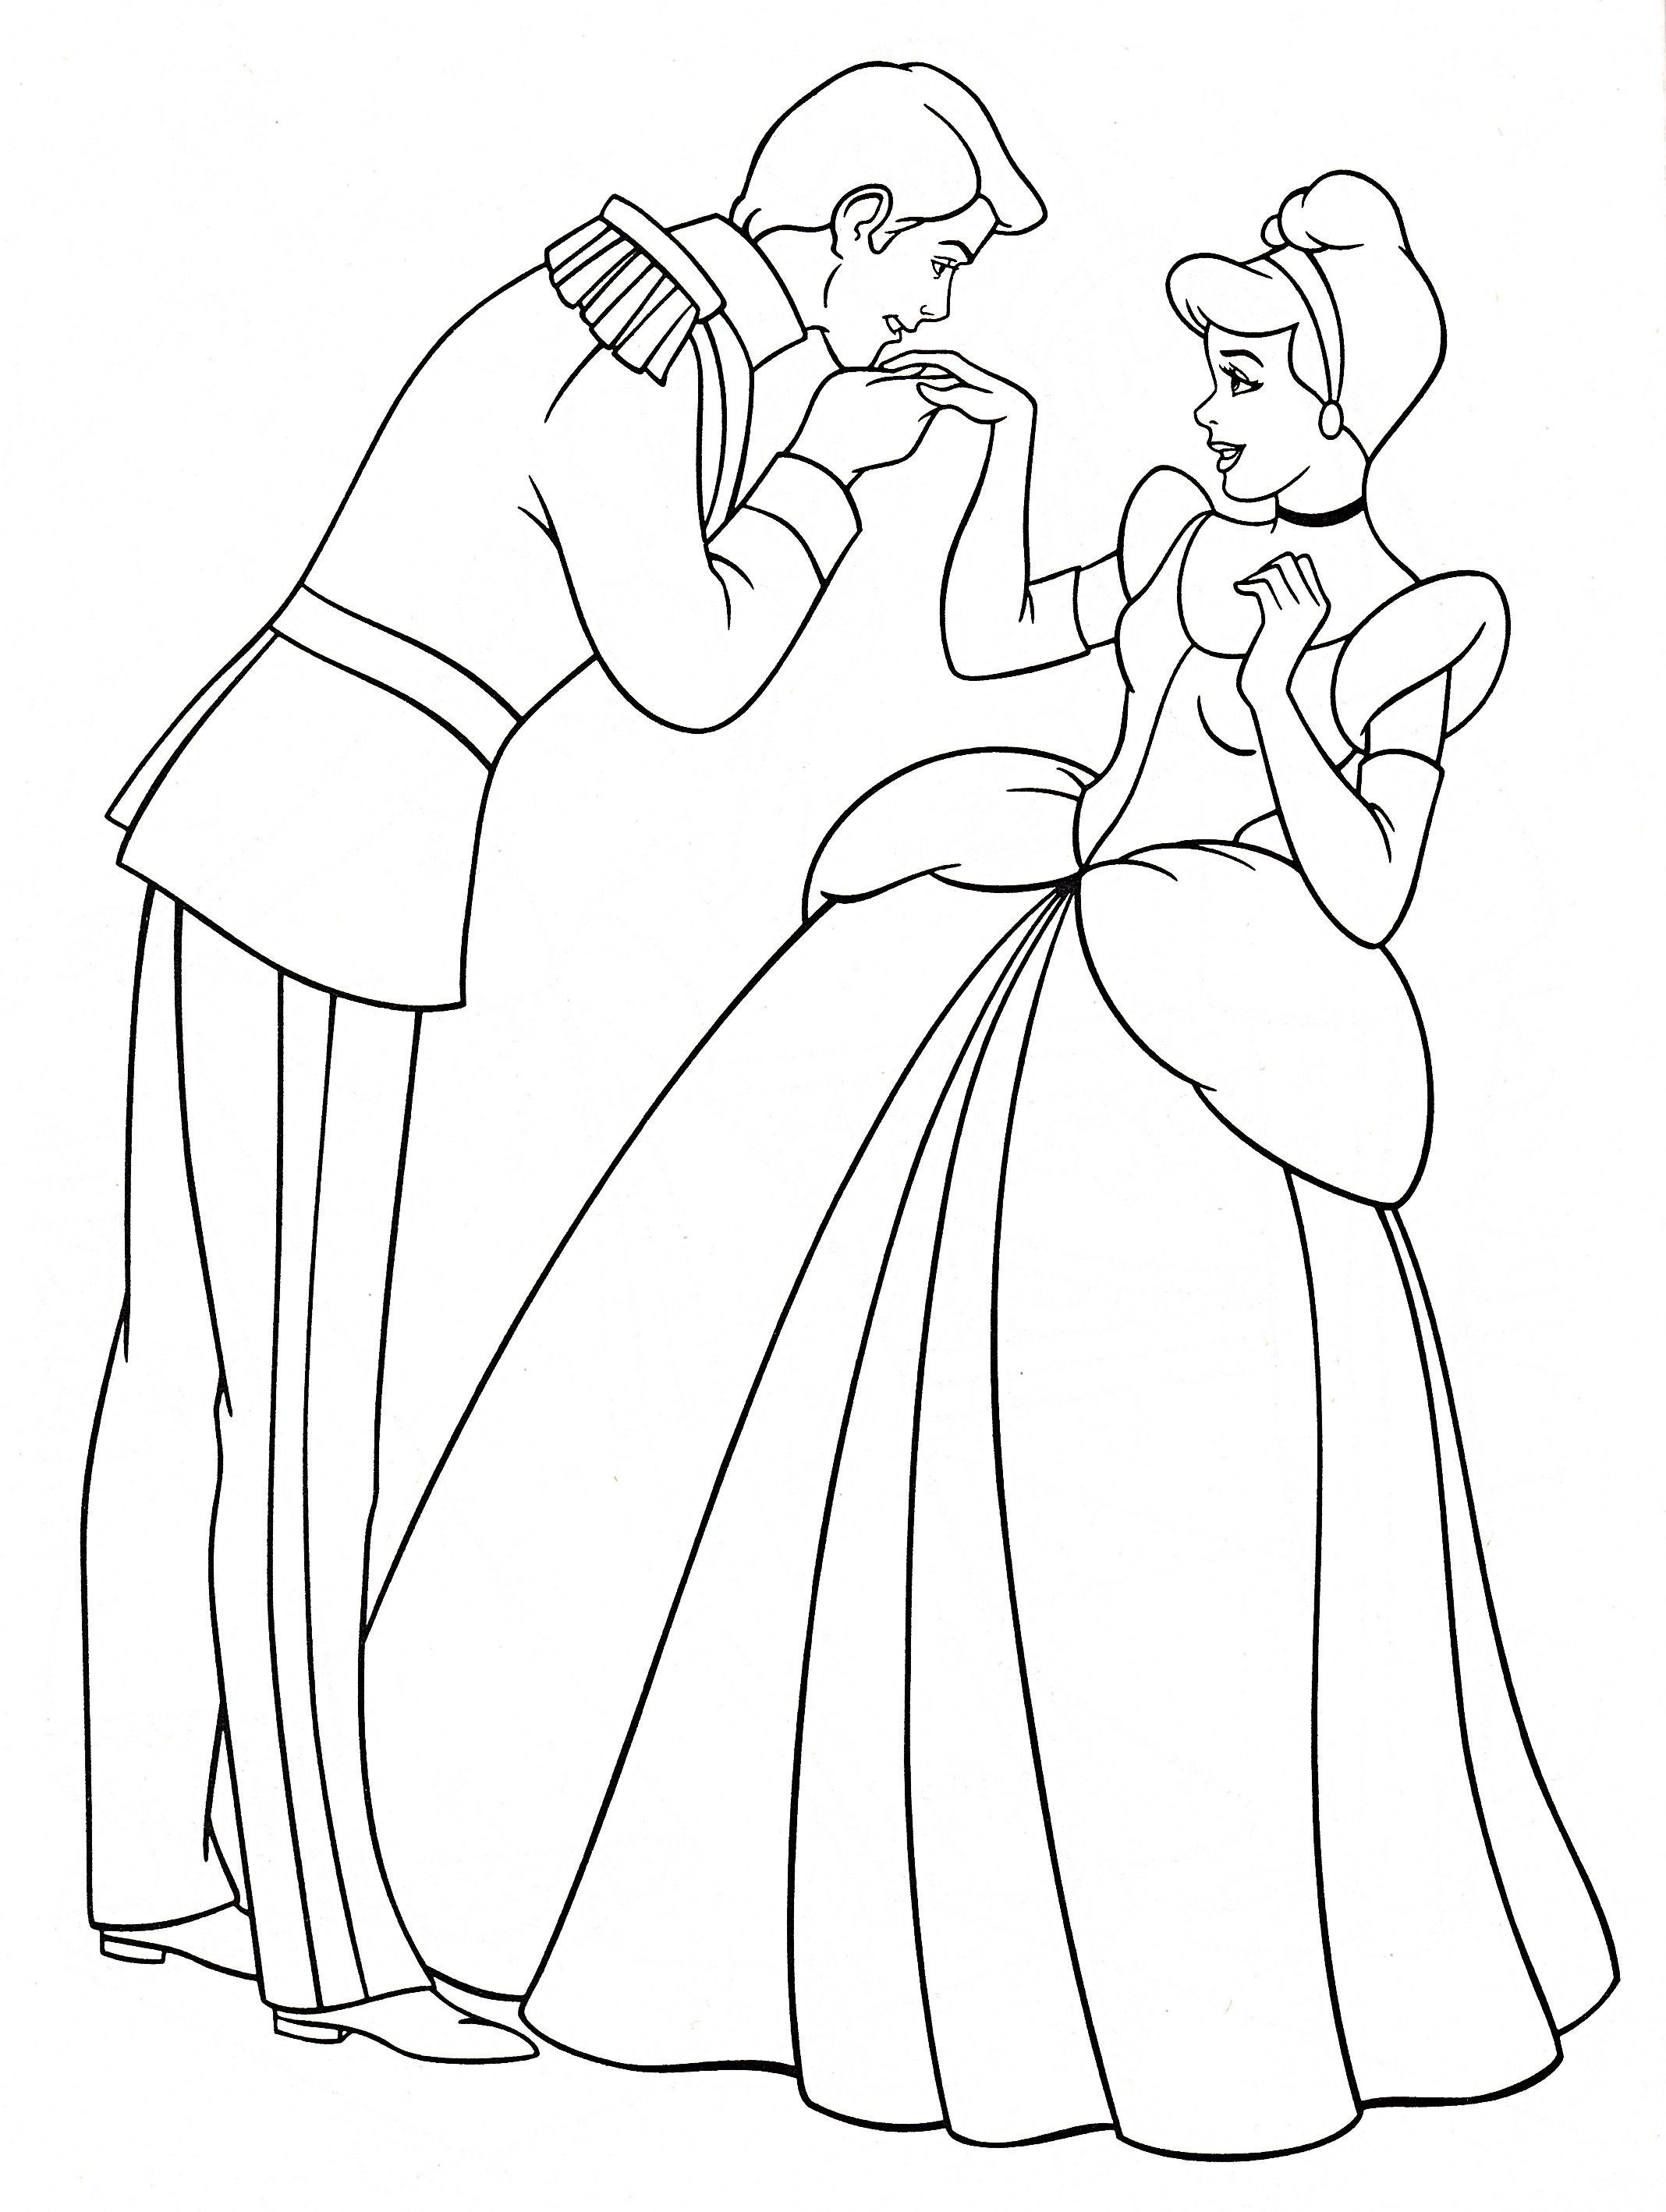 Disney Princess And Prince Coloring Pages Disney Princess